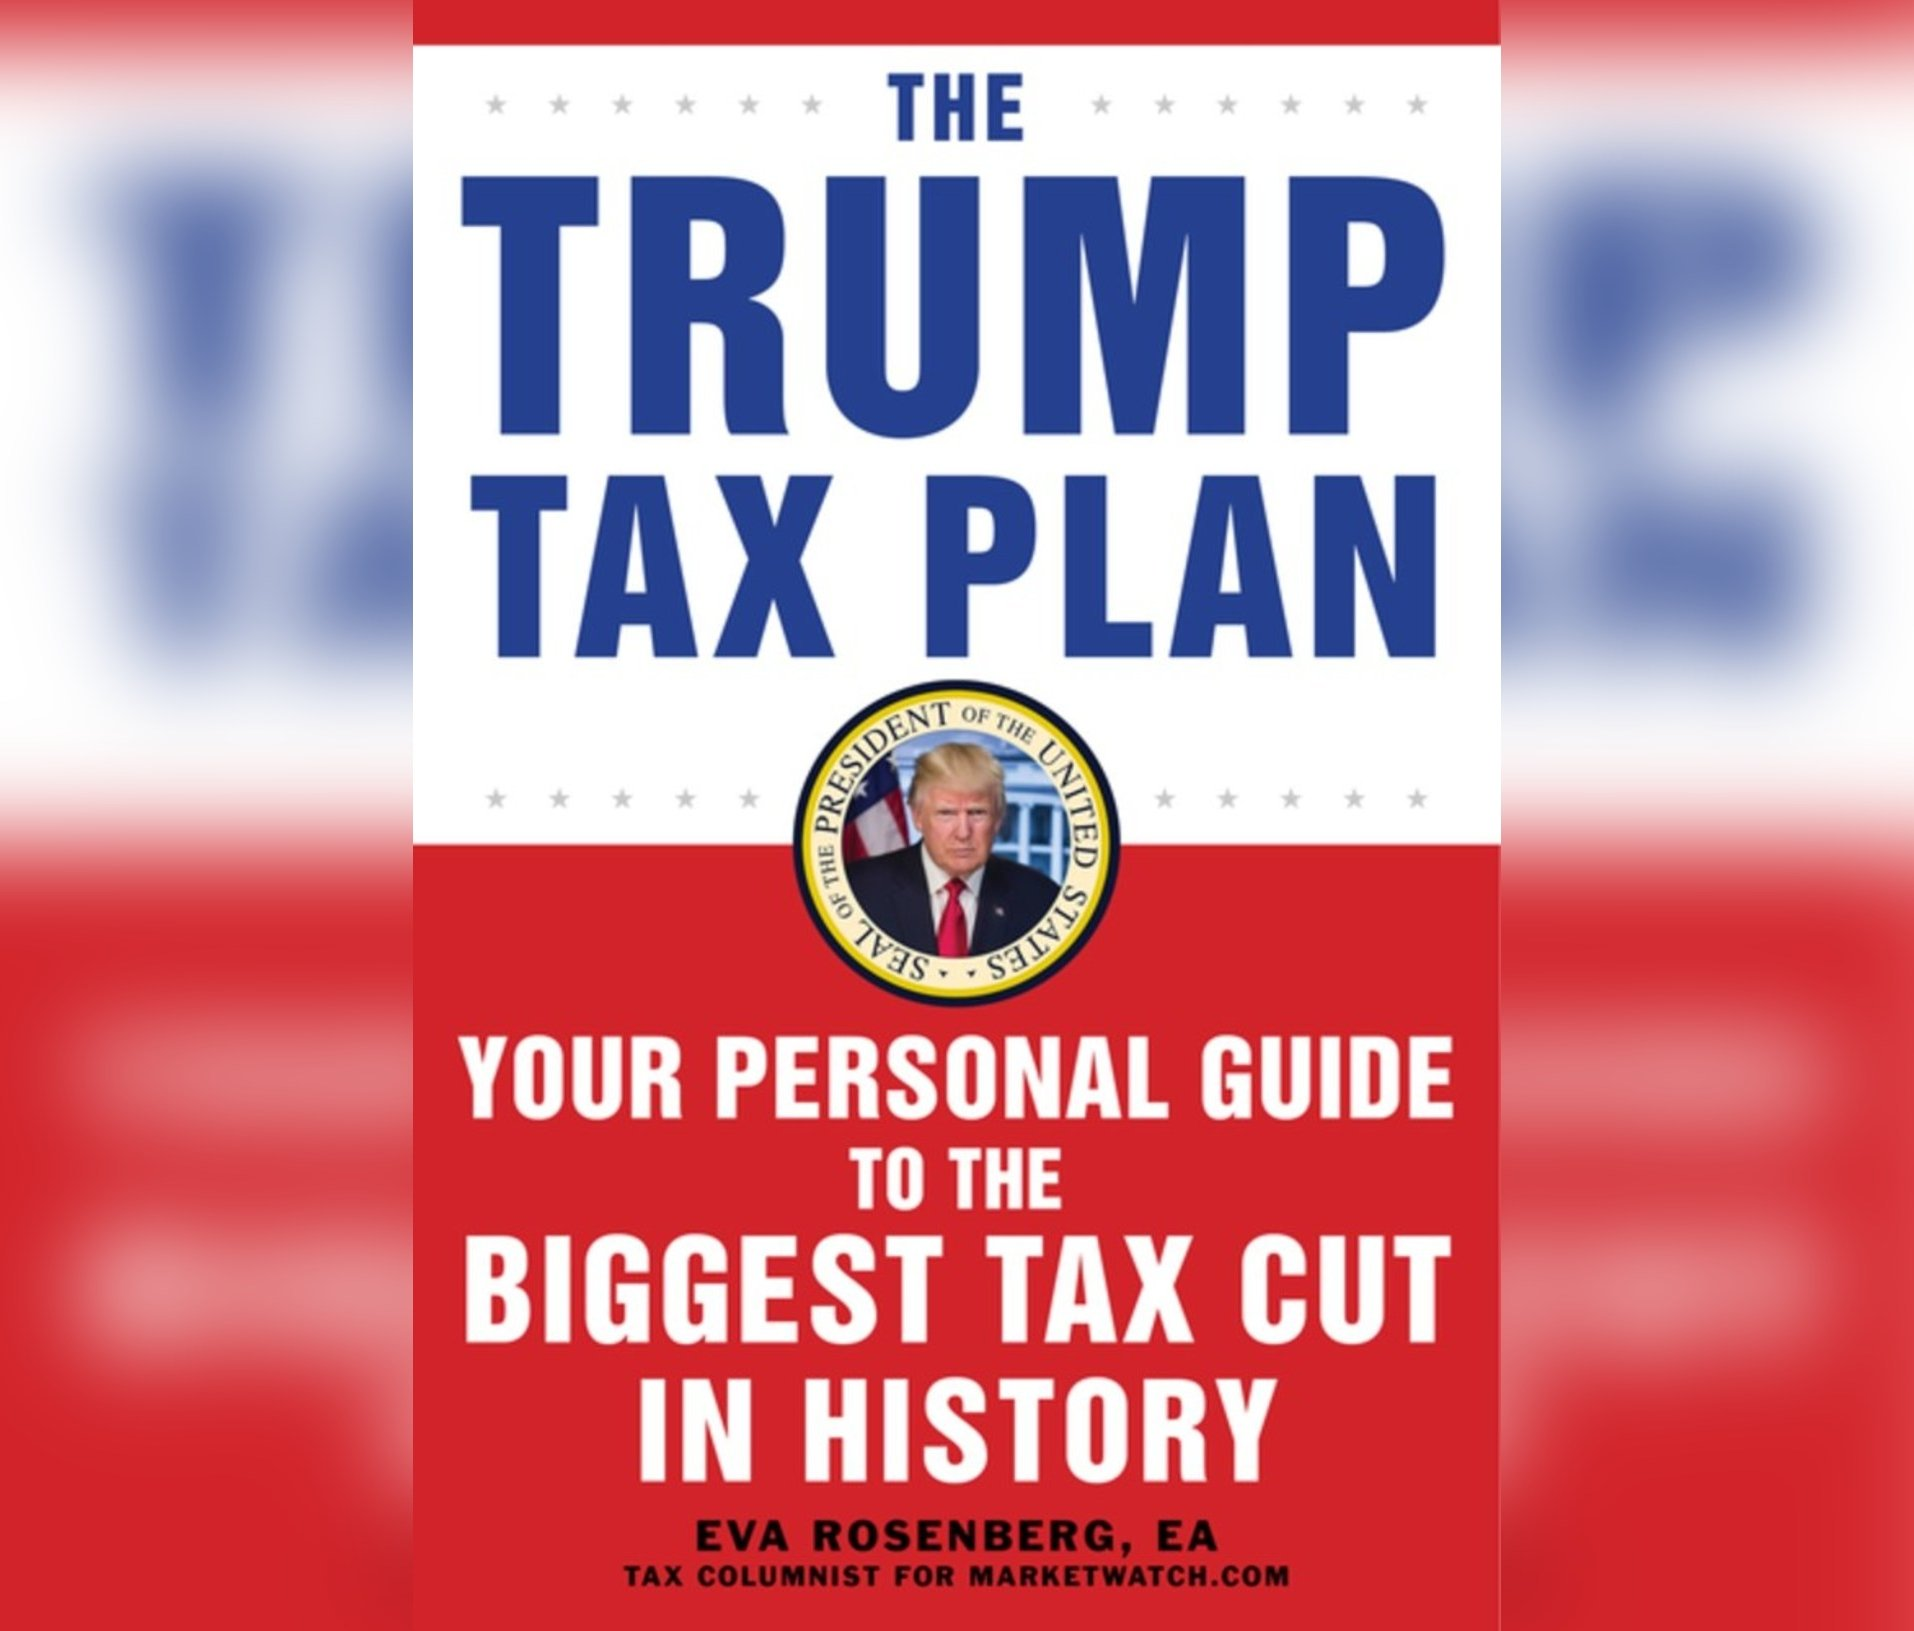 The Trump Tax Plan: Your Personal Guide to the Biggest Tax Cut in American History